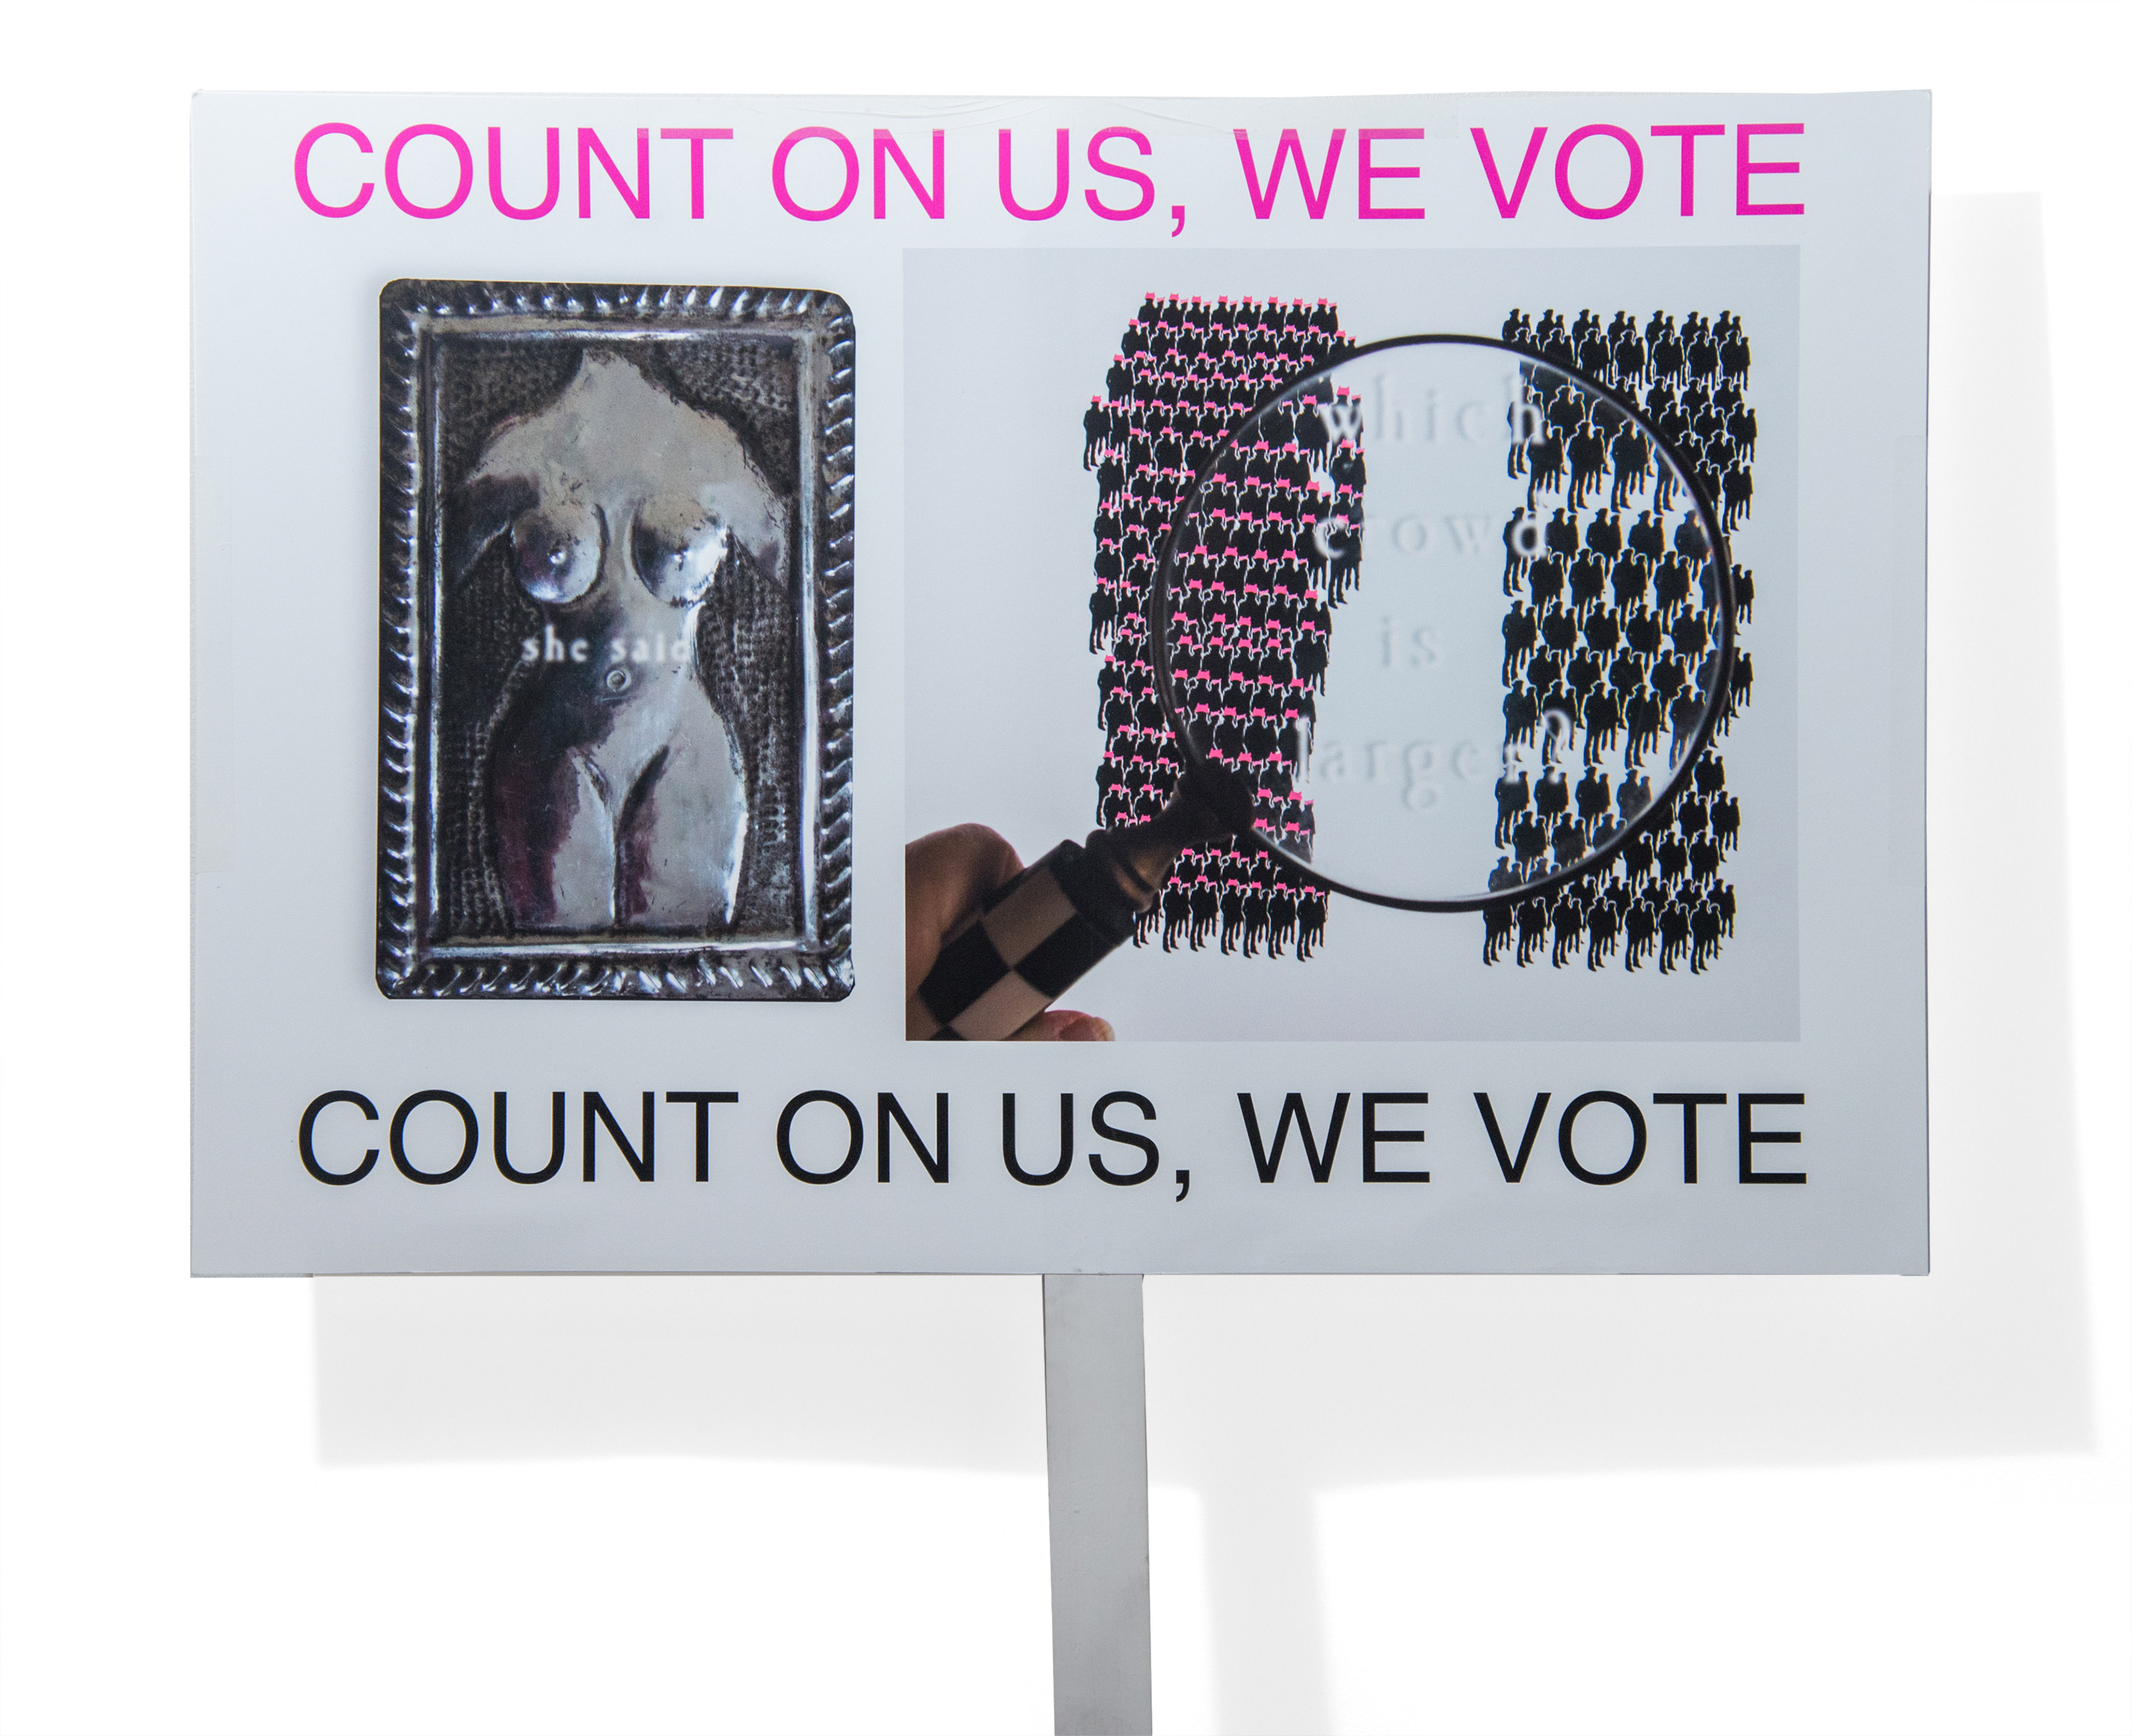 Count on us, we vote